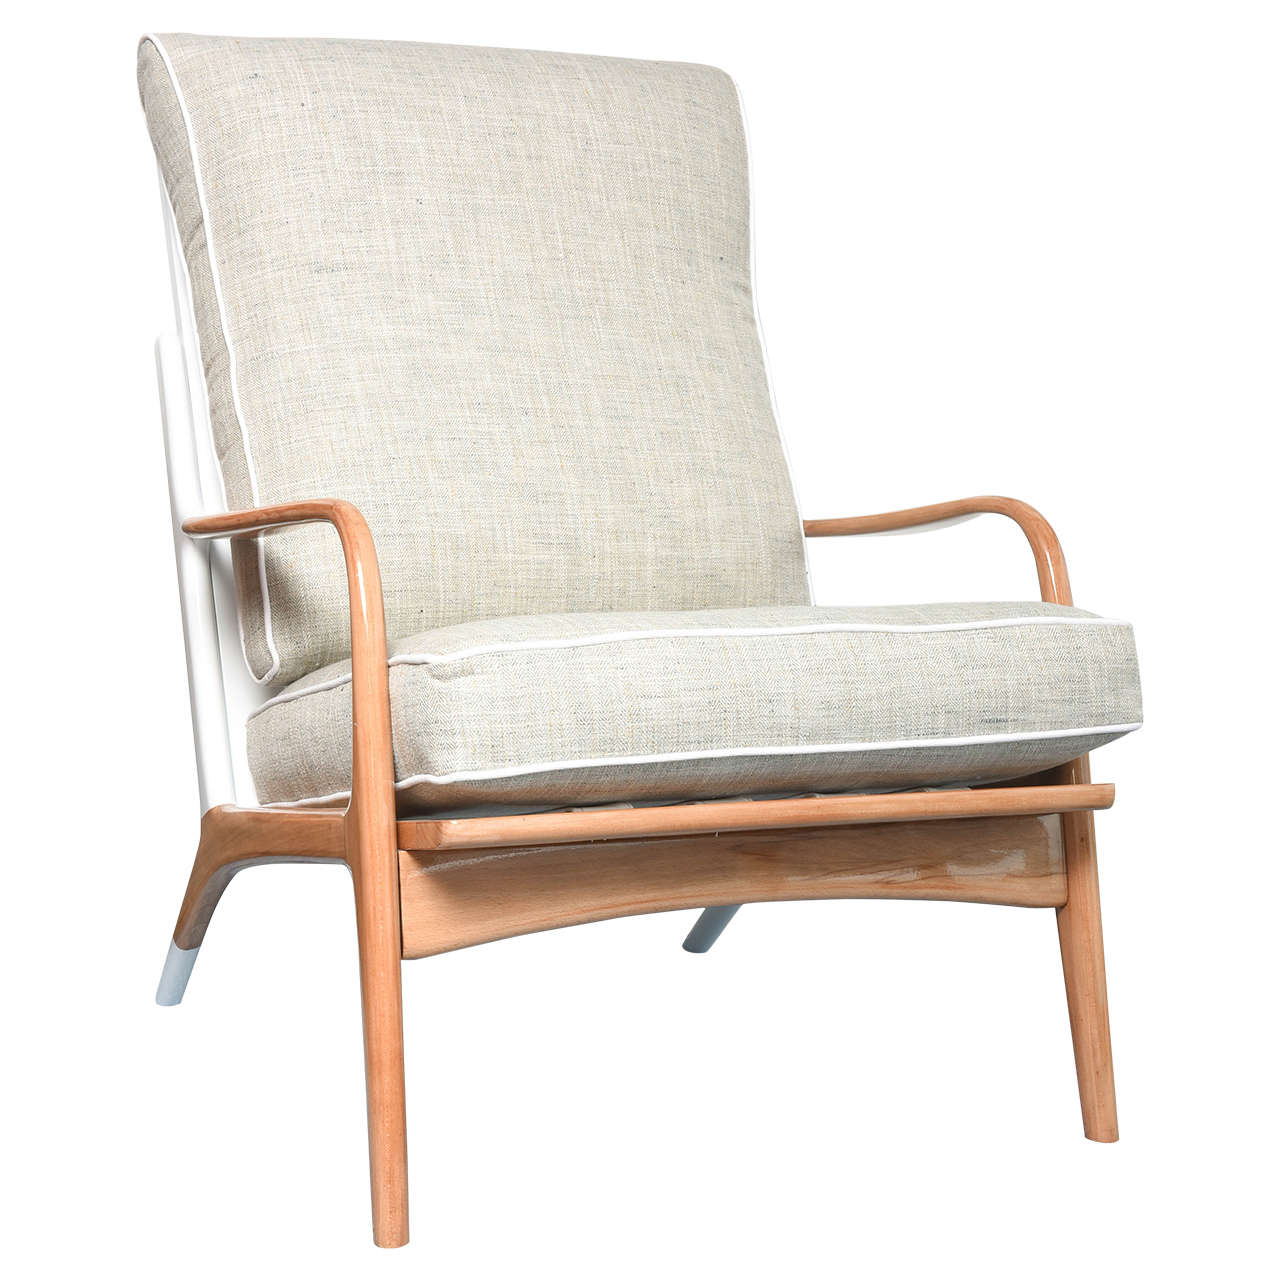 Mid-Century White And Wood Lounge Chair For Sale At 1stdibs